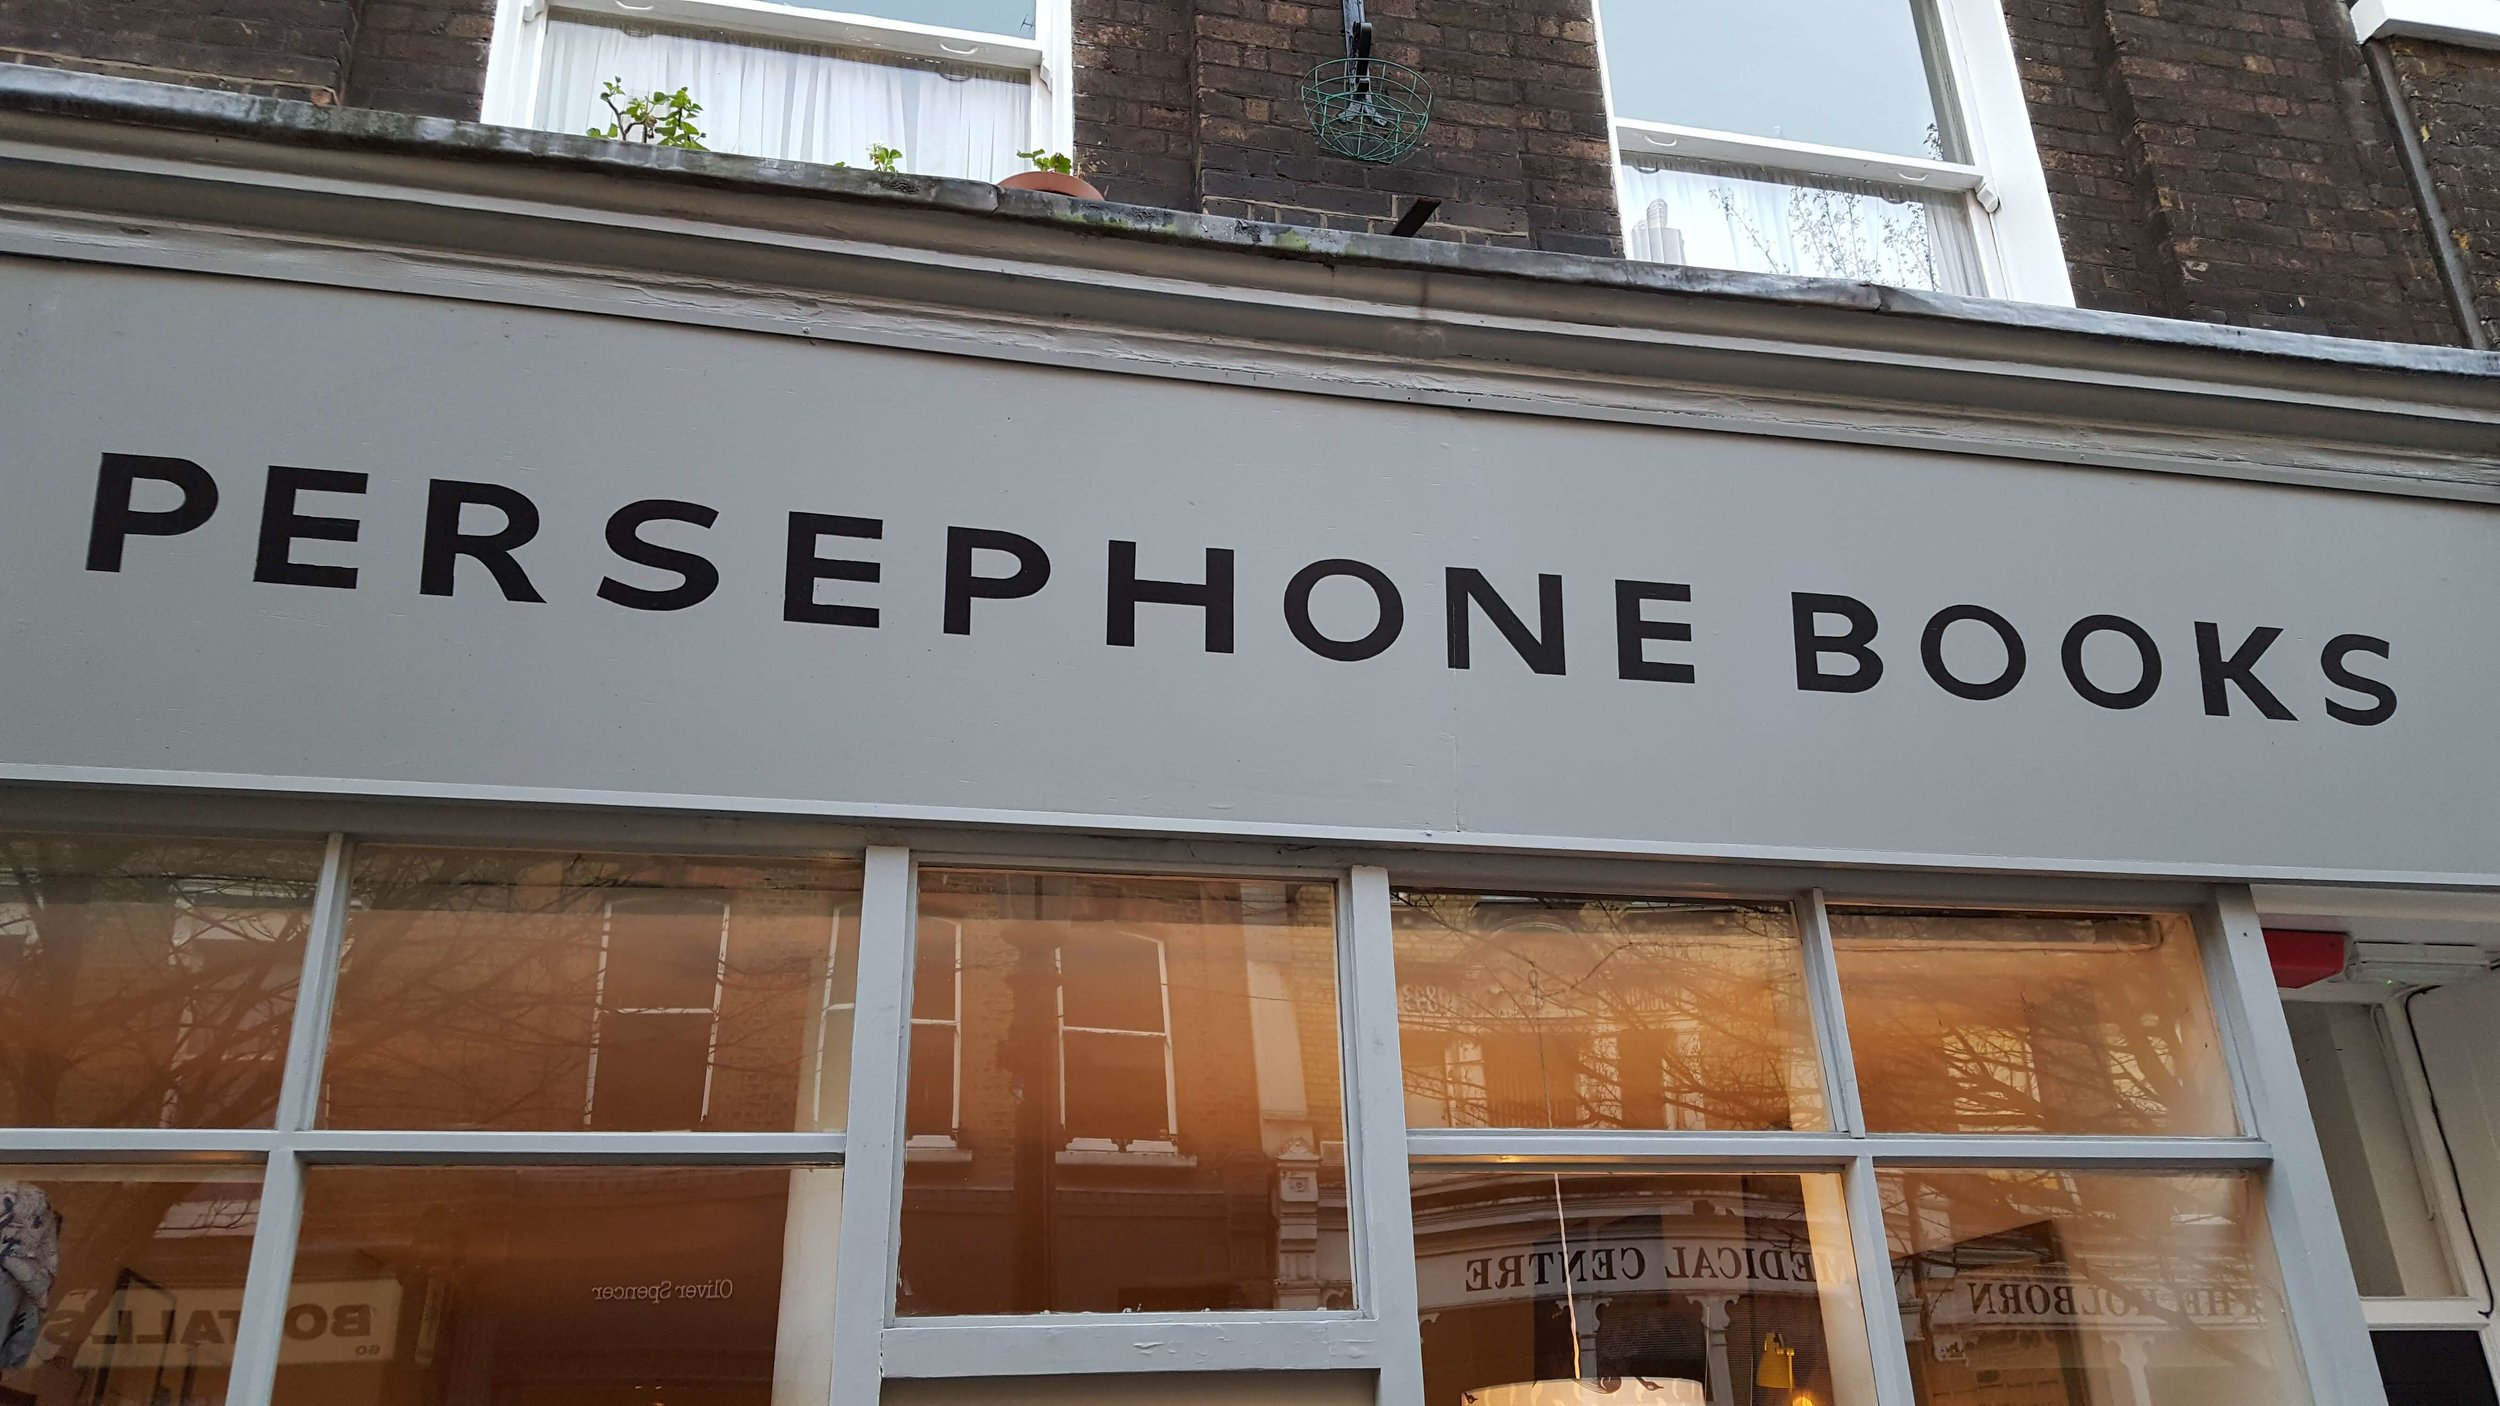 There are so many amazing bookstores in London to spend hours browsing in, e.g., Waterstone's and Foyles. This one is focused on feminist literature in the Bloomsbury neighborhood.